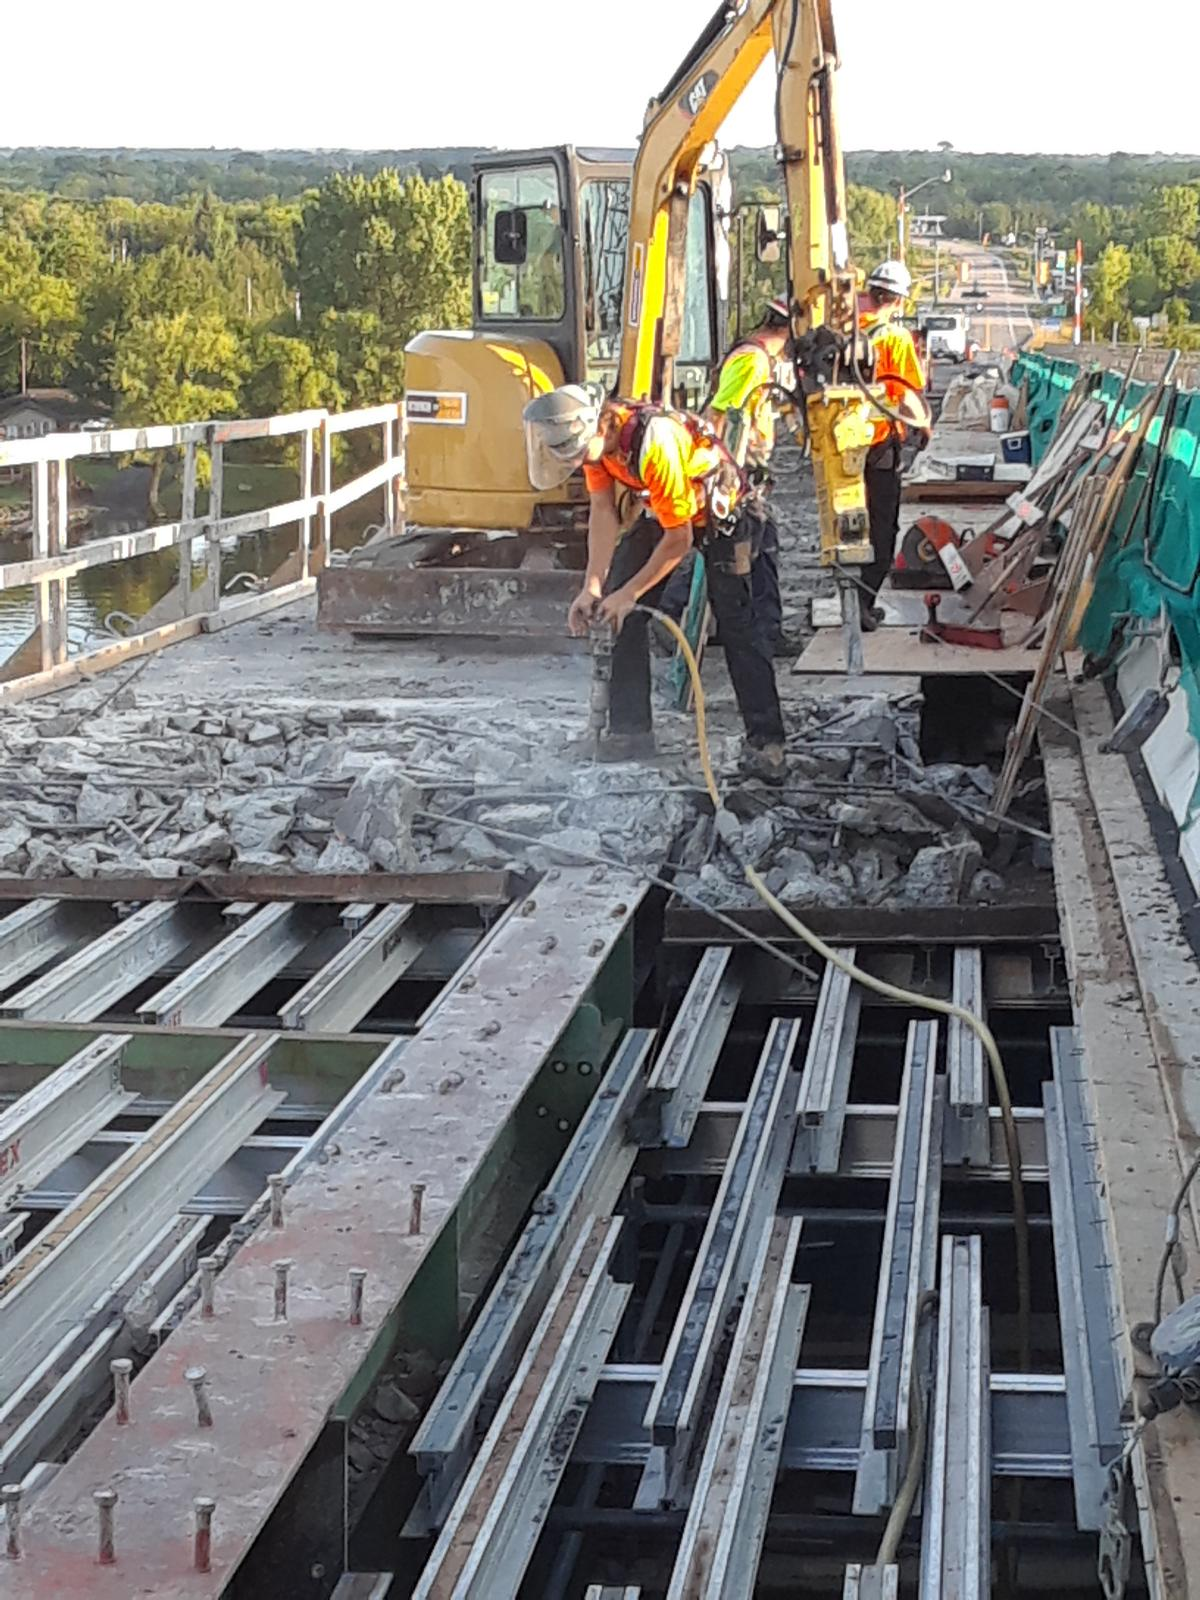 Chipping concrete on the girders